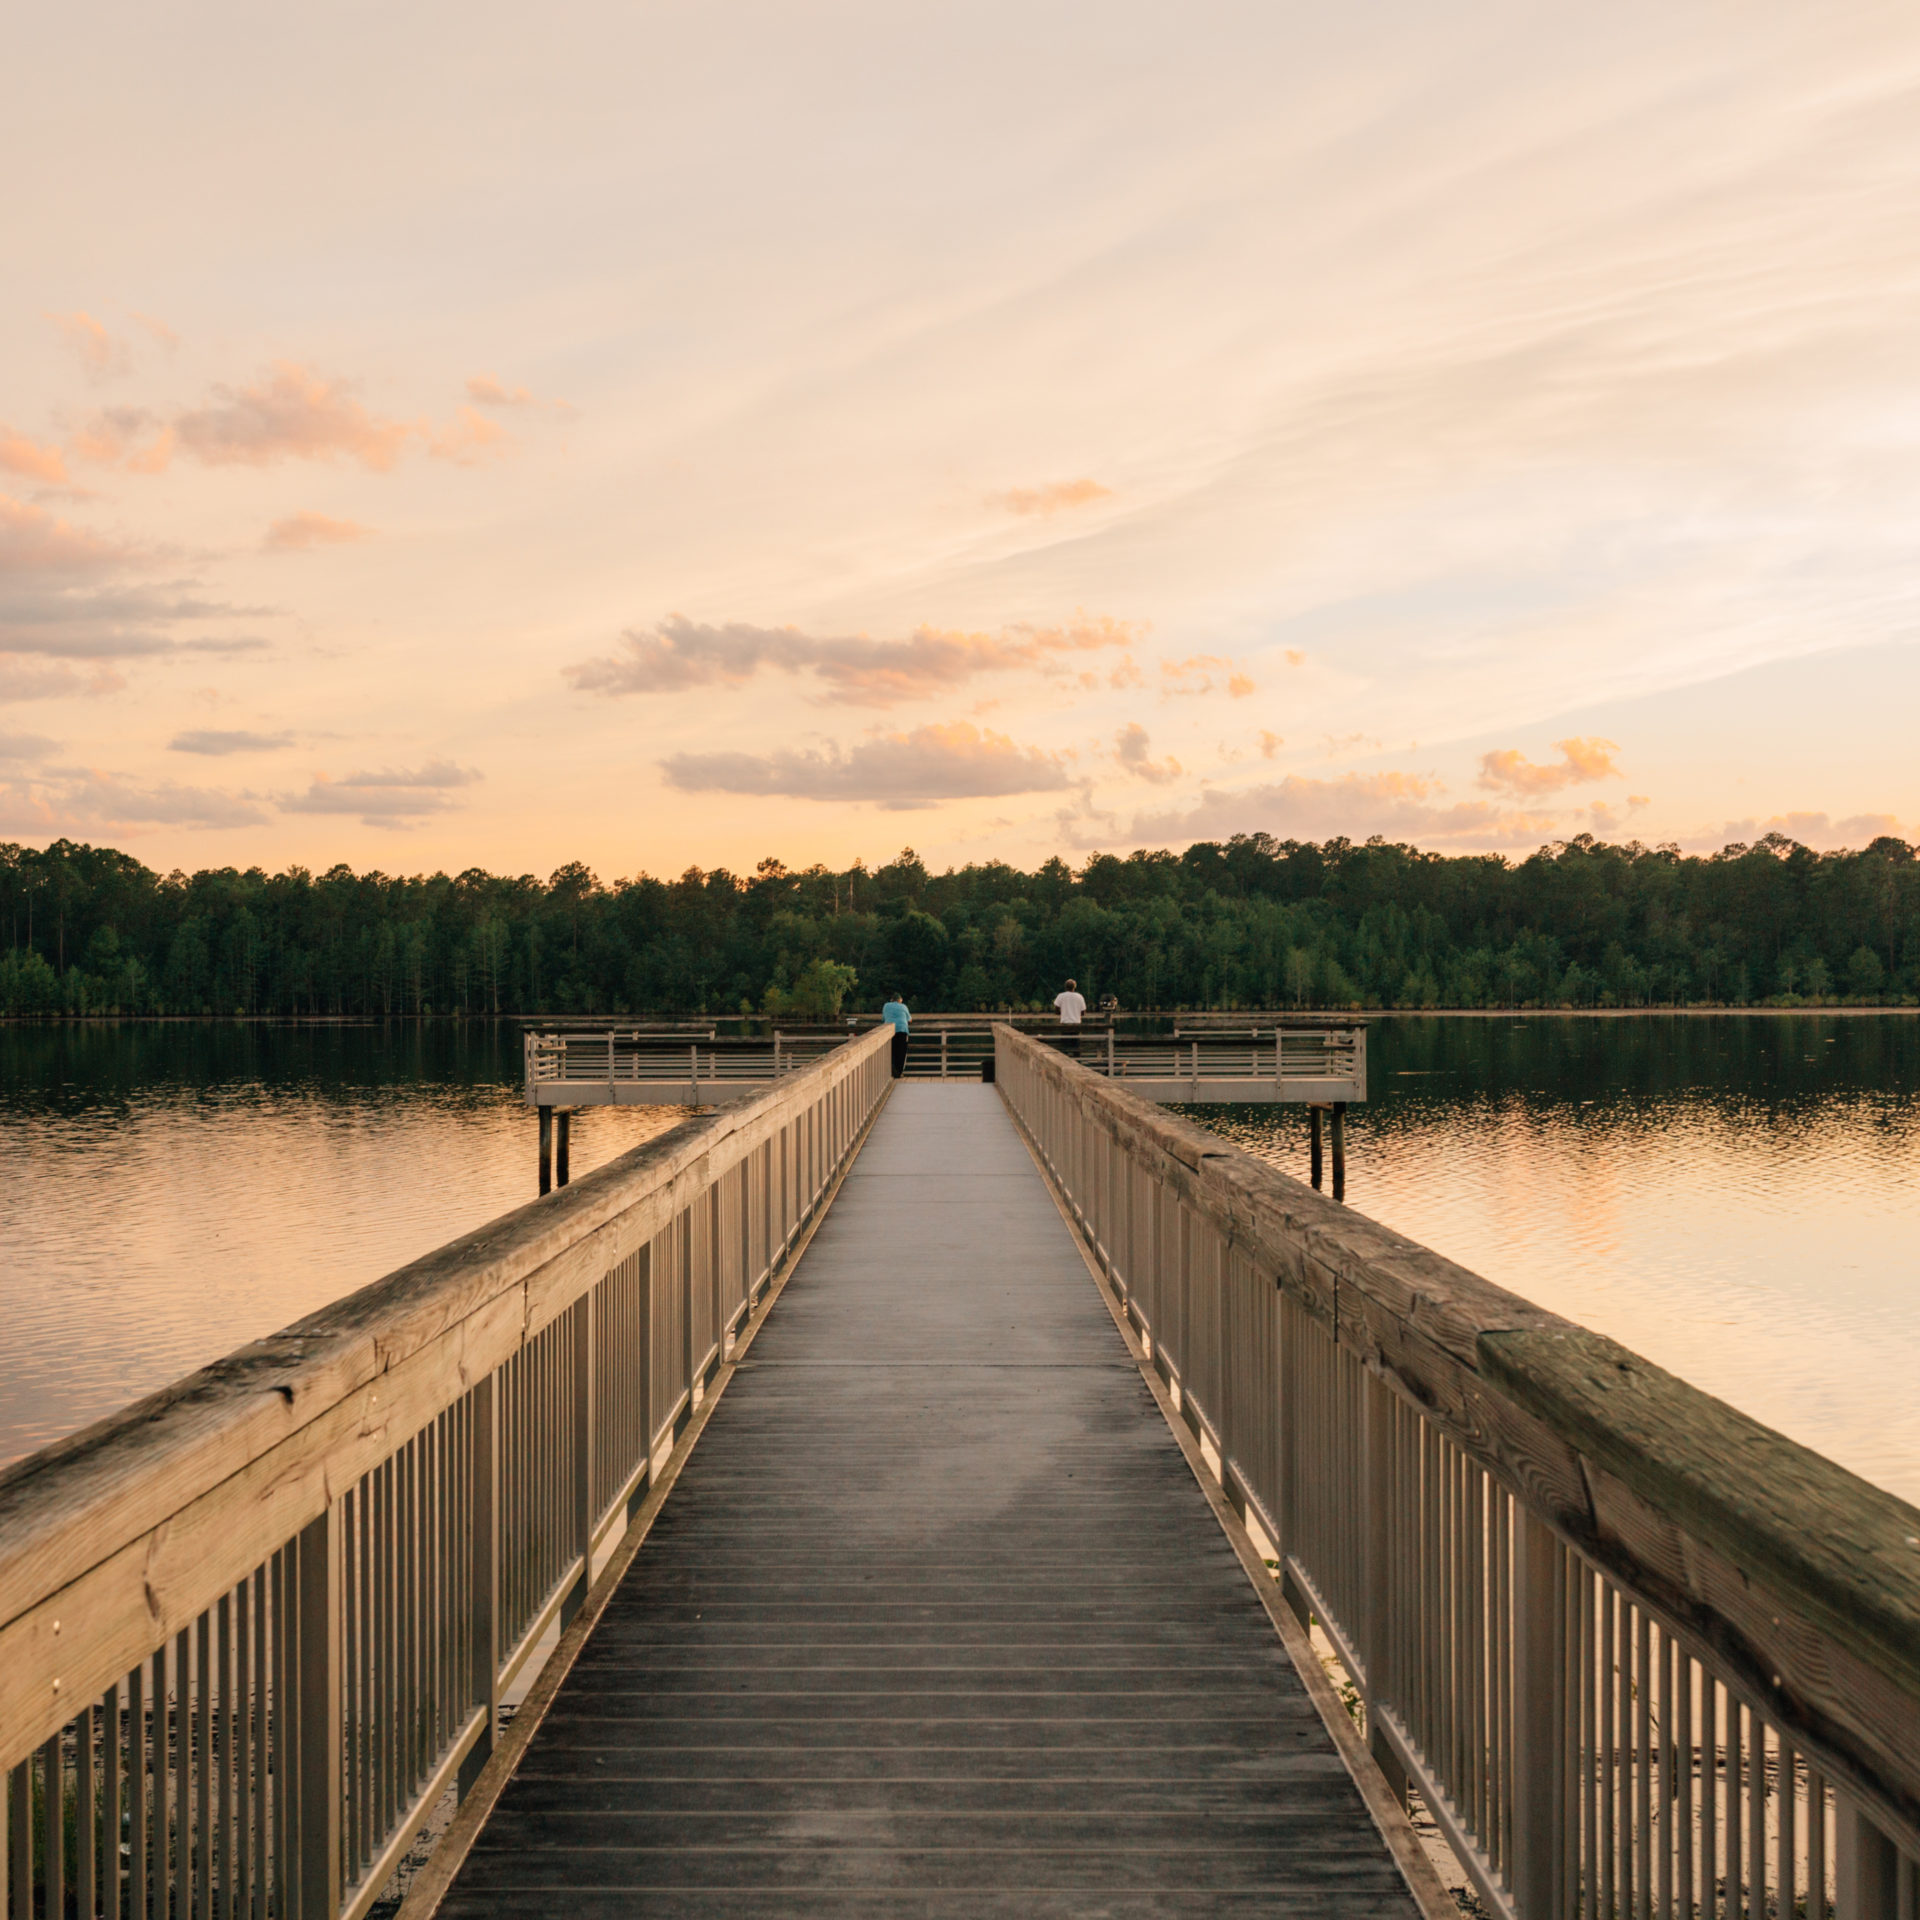 lake view with boardwalk and sunset